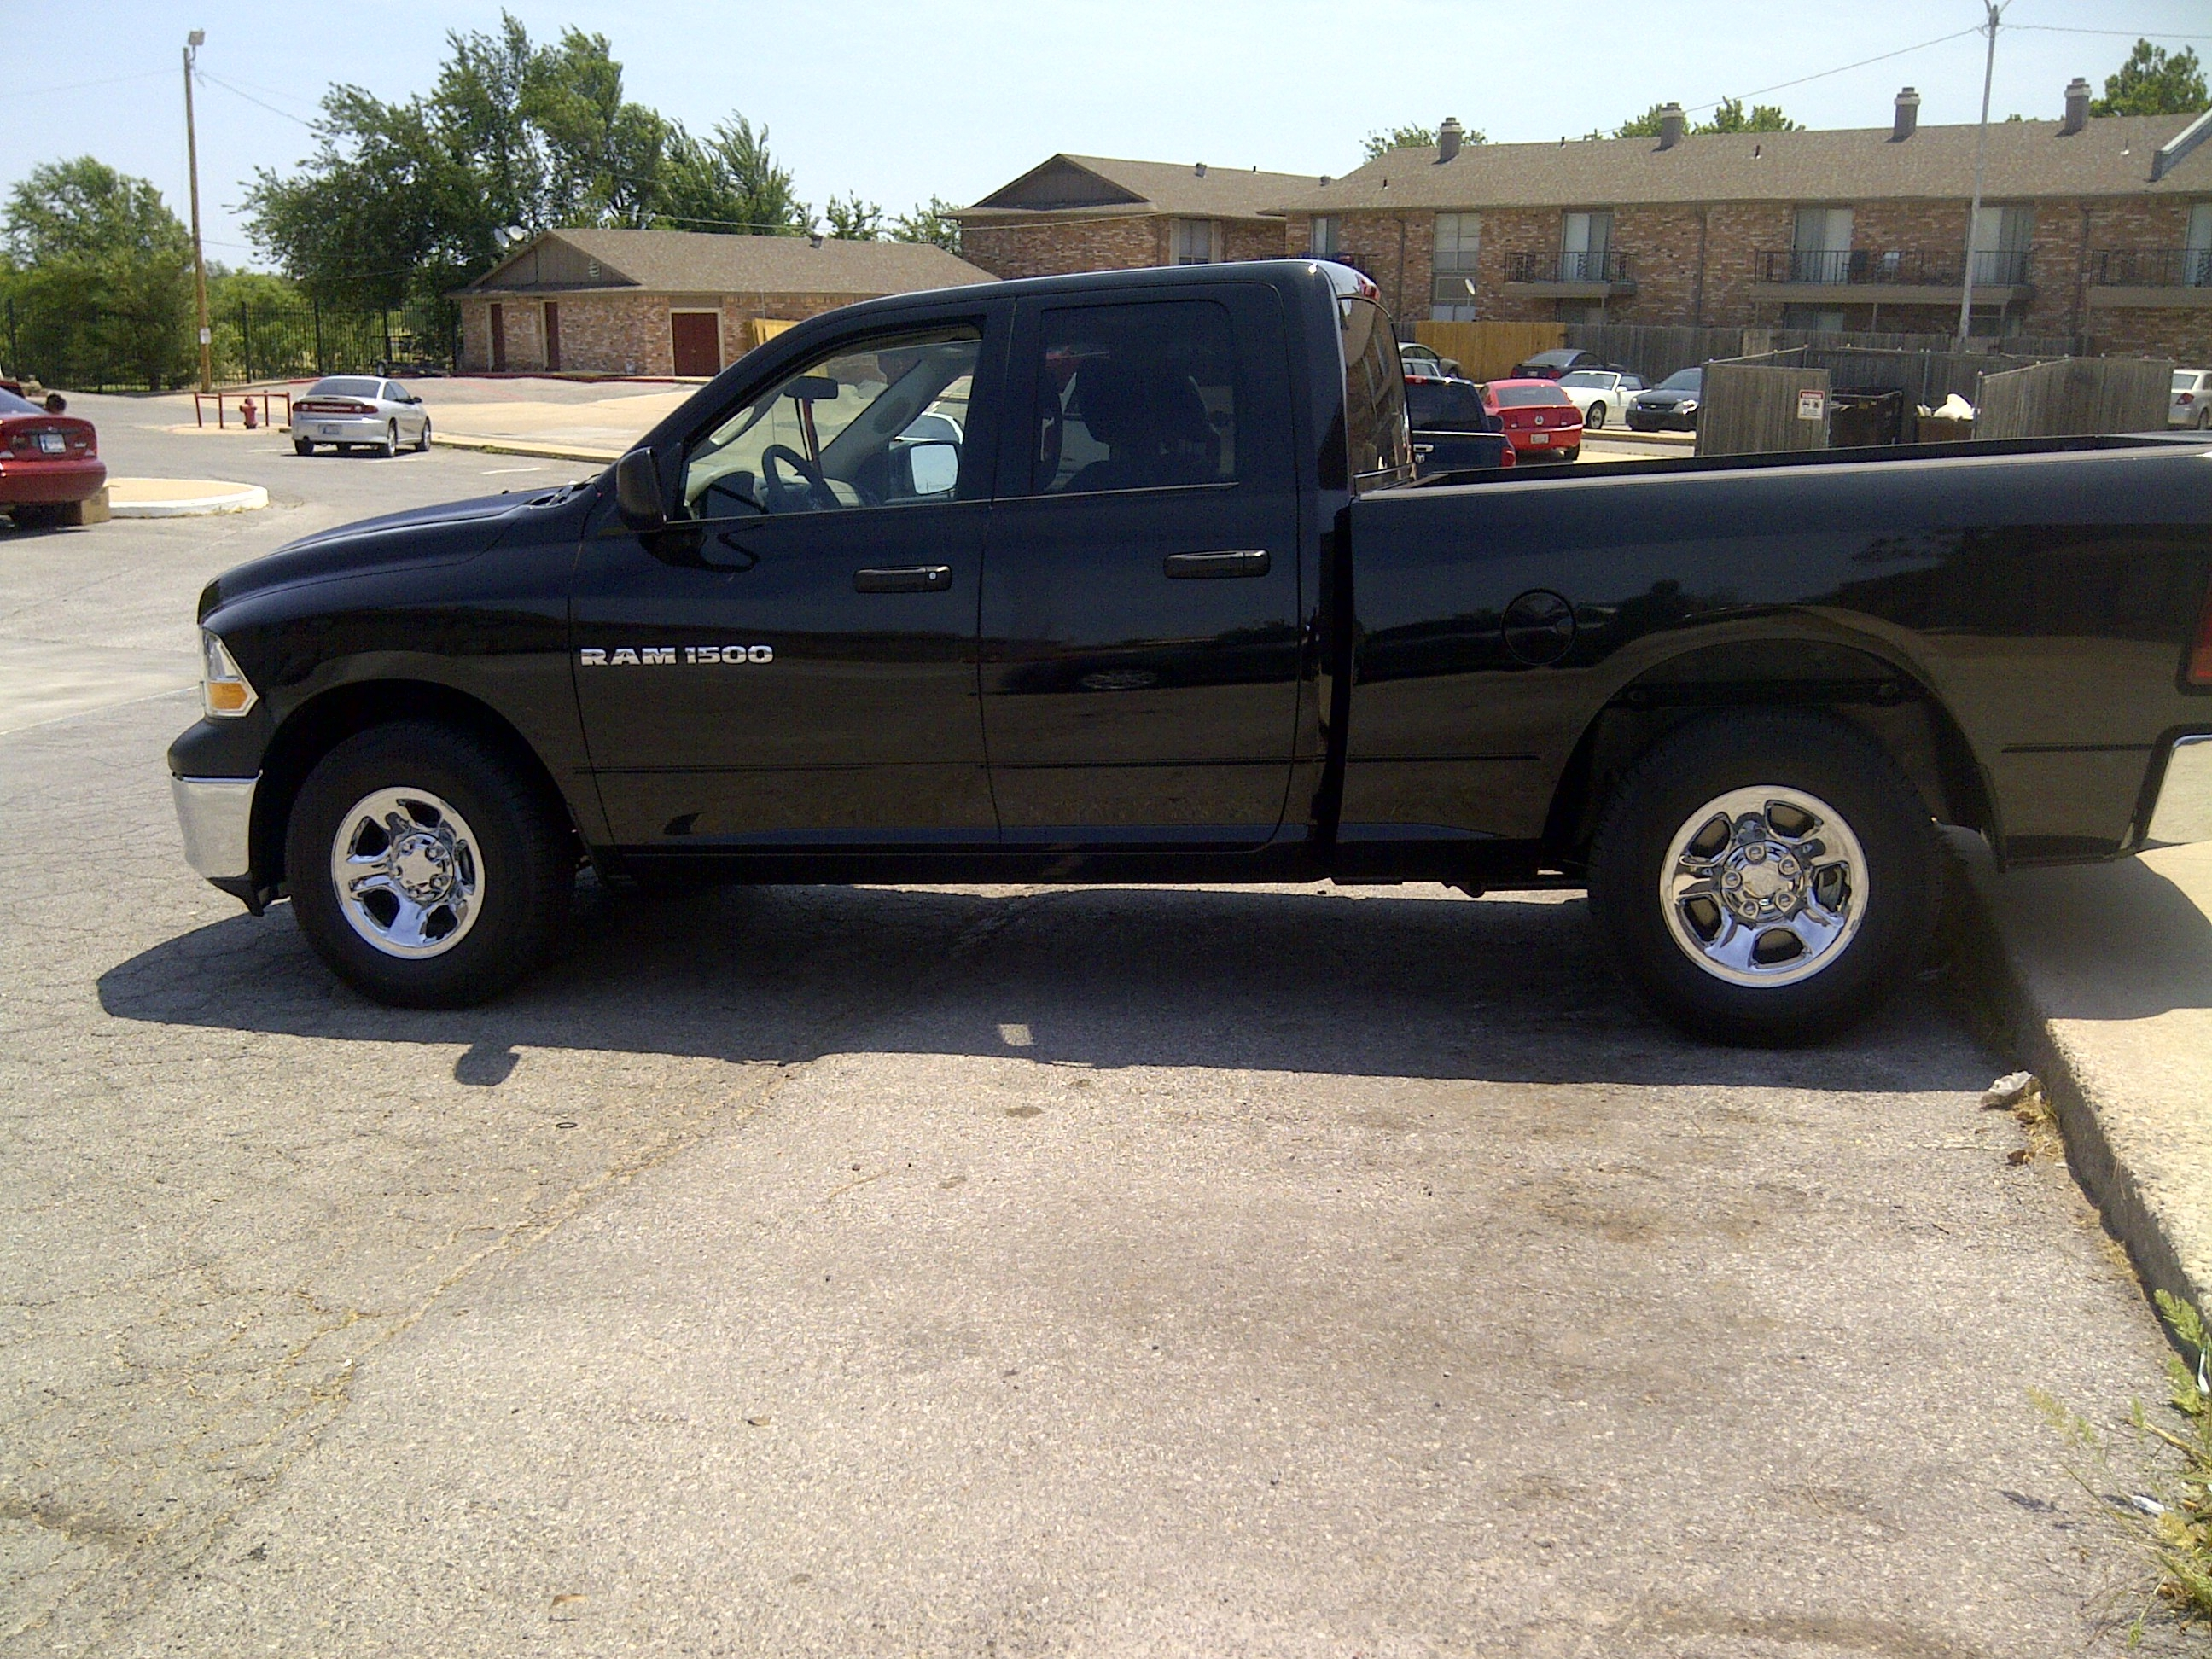 Will_sWheels 2011 Dodge Ram 1500 Quad Cab 15218444